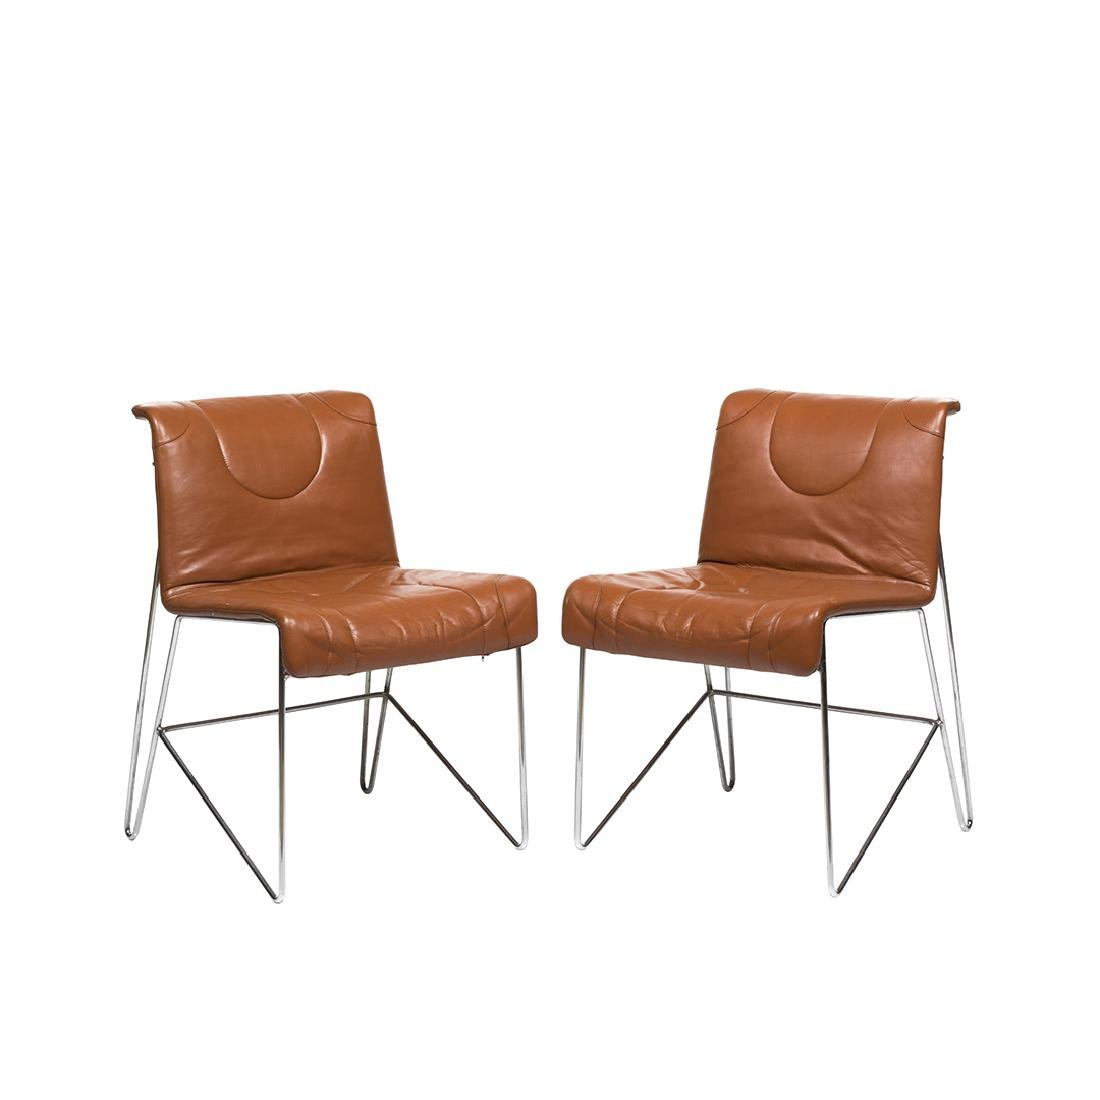 Mariani Chairs (2)